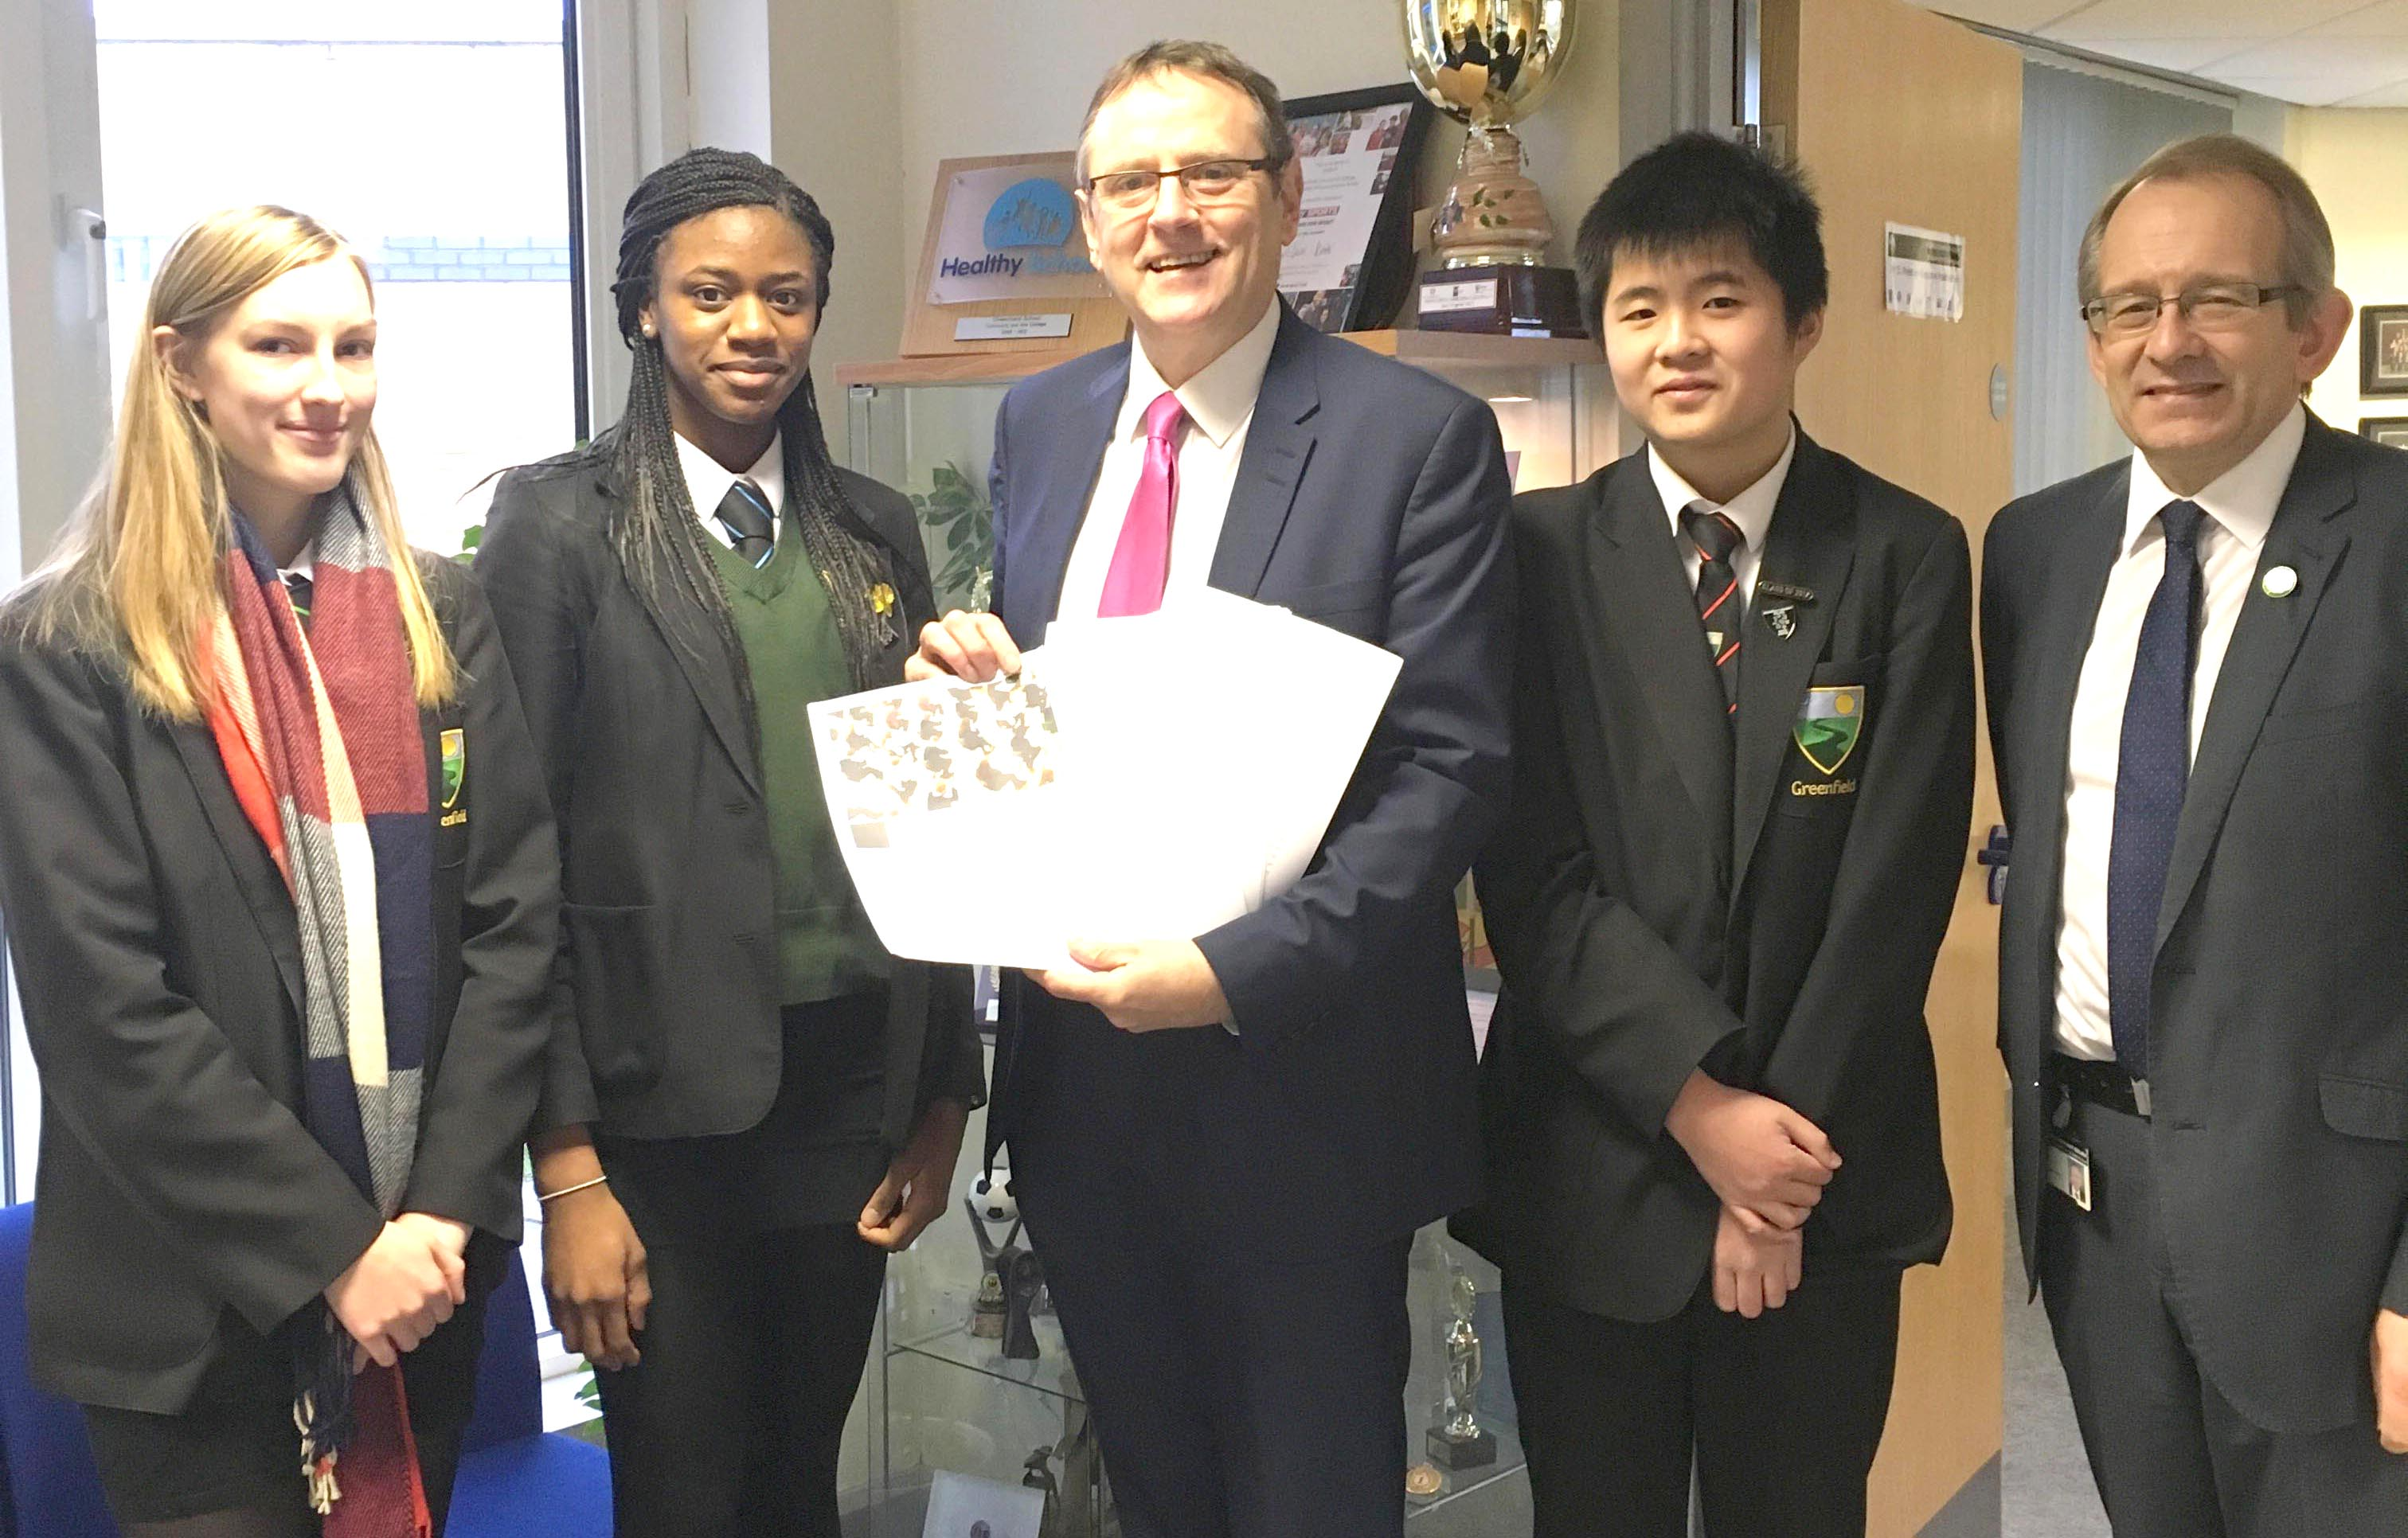 Aycliffe Students' Petition Handed in to Parliament